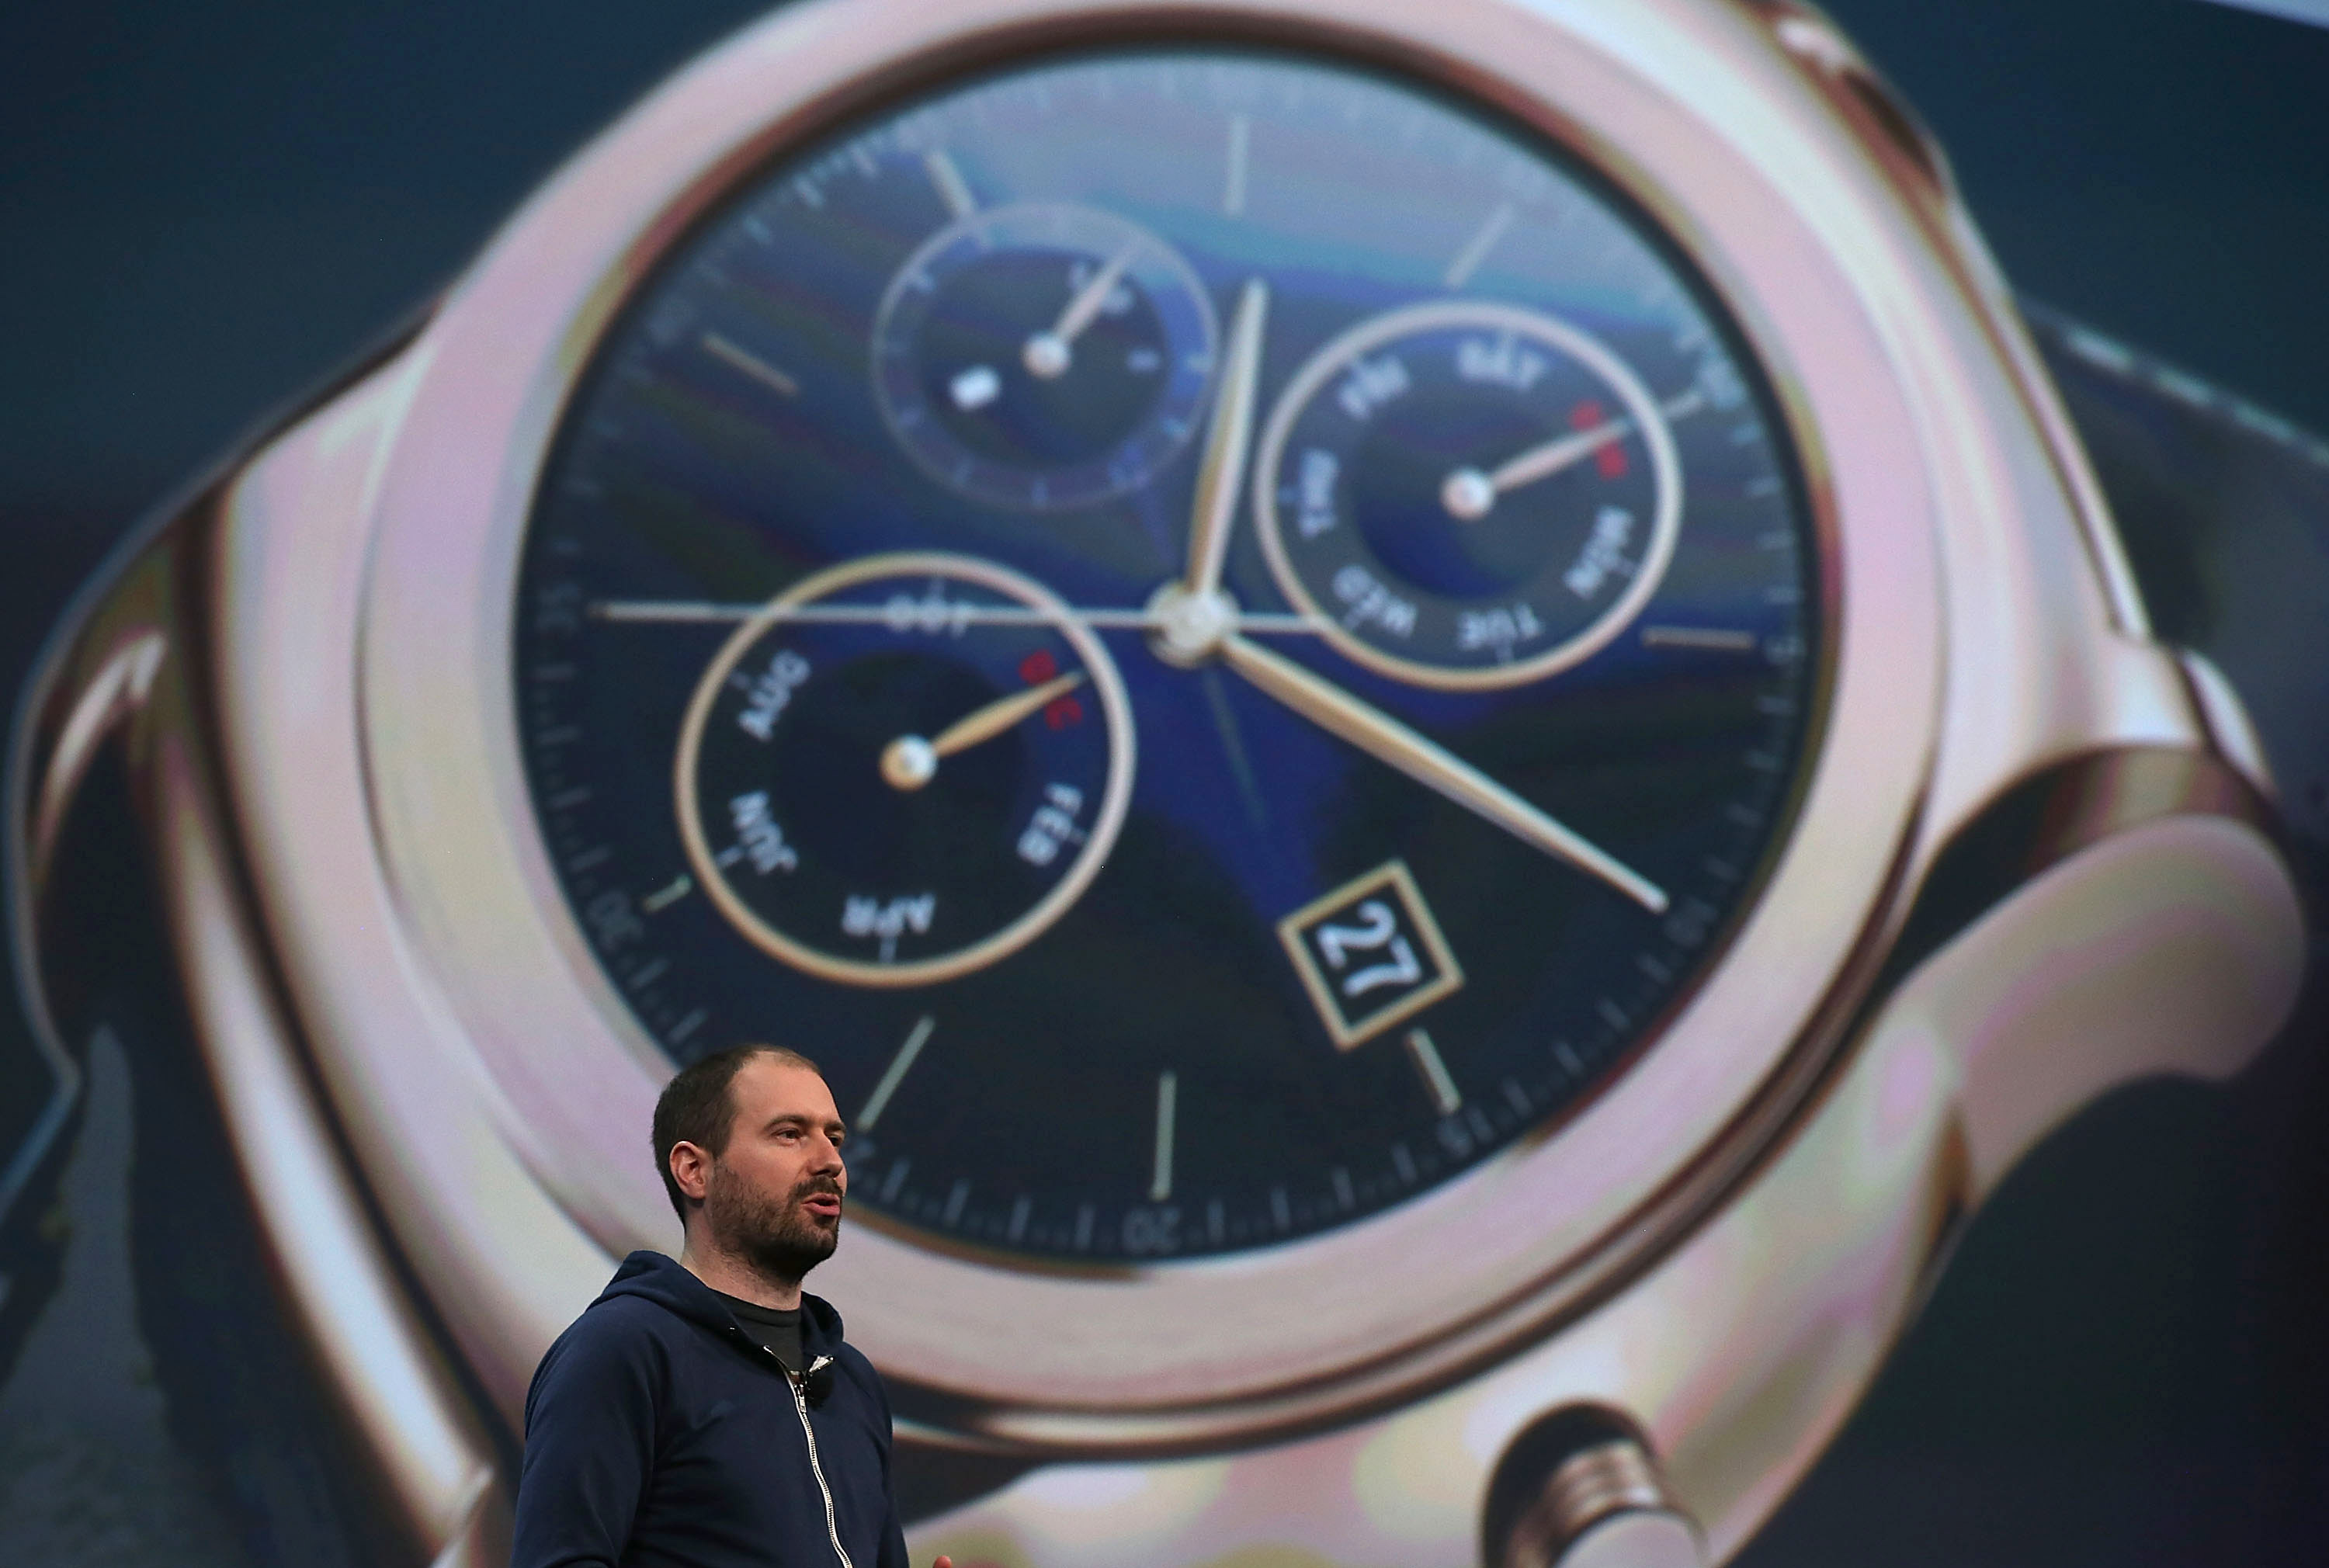 Google Android Wear director David Singleton announces Androidwear updates during the 2015 Google I/O conference on May 28, 2015 in San Francisco, California.